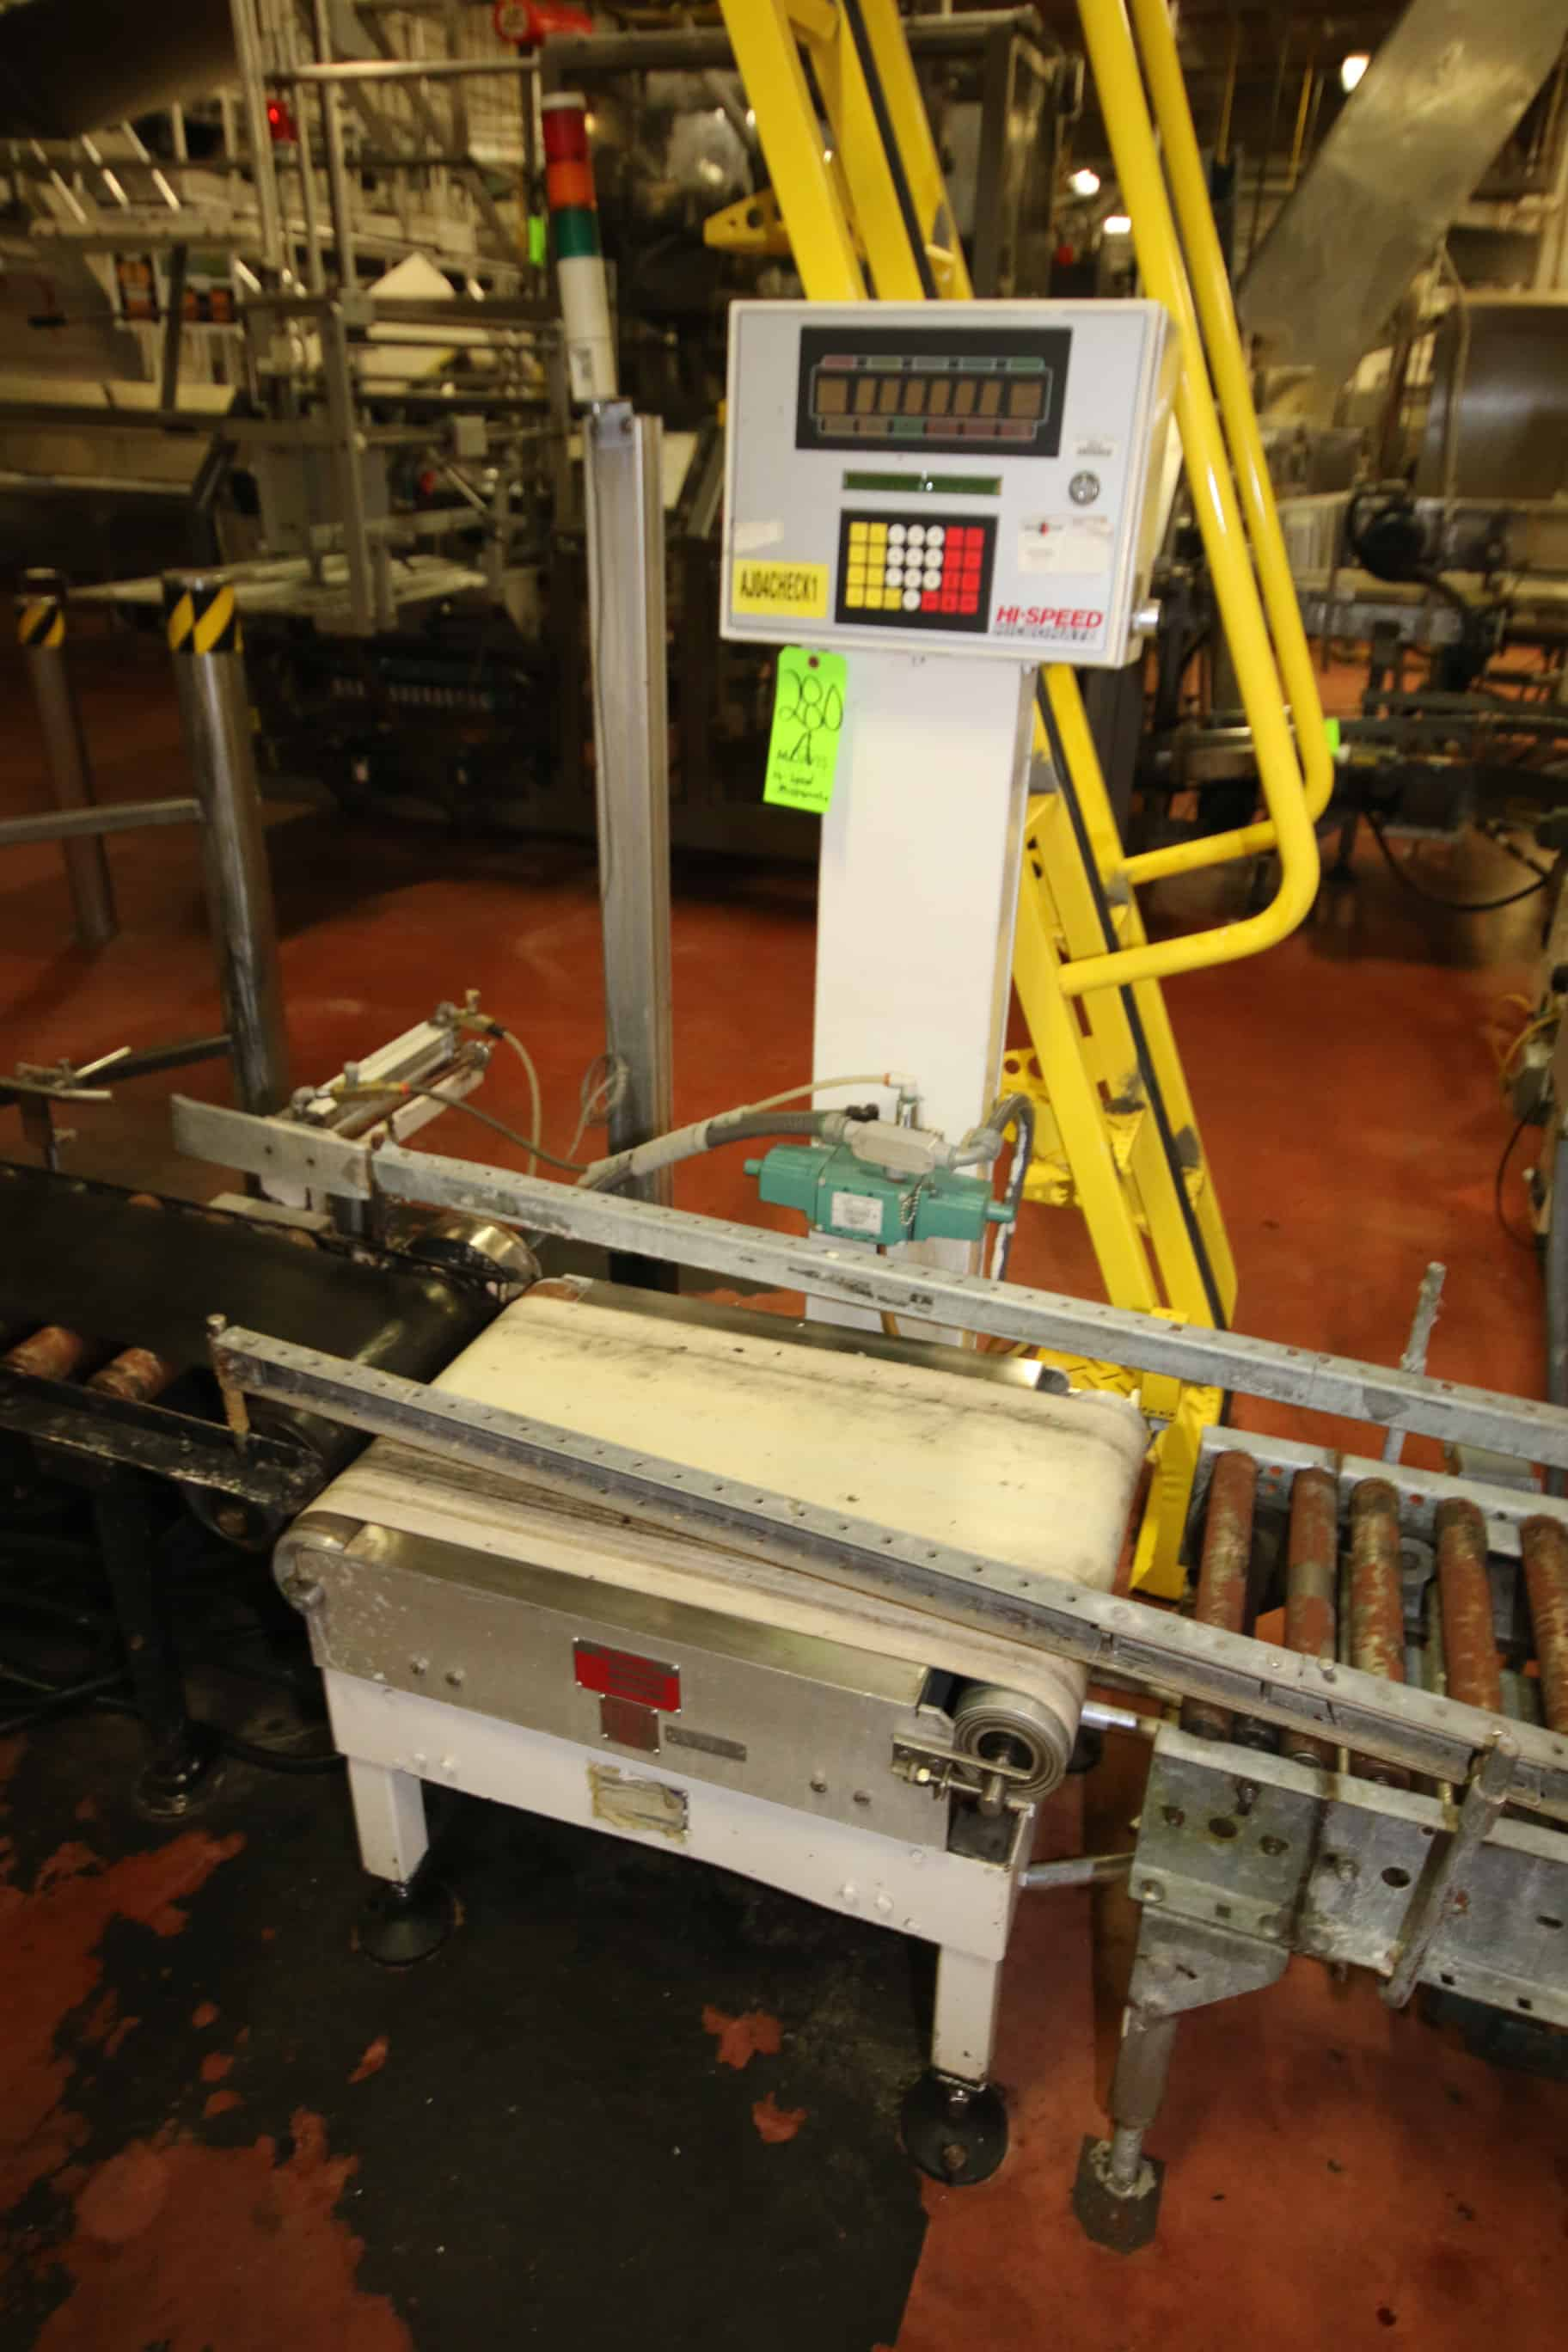 Micromate Hi-Speed Checkweigher, Model CM60K2-CT, S/N 8986 with Allen Bradley 16-Slot I/O Chassis, Model B-80, S/N 920607 with Infeed Belt and Outfeed Roller and Belt Conveyor and Operators Platform